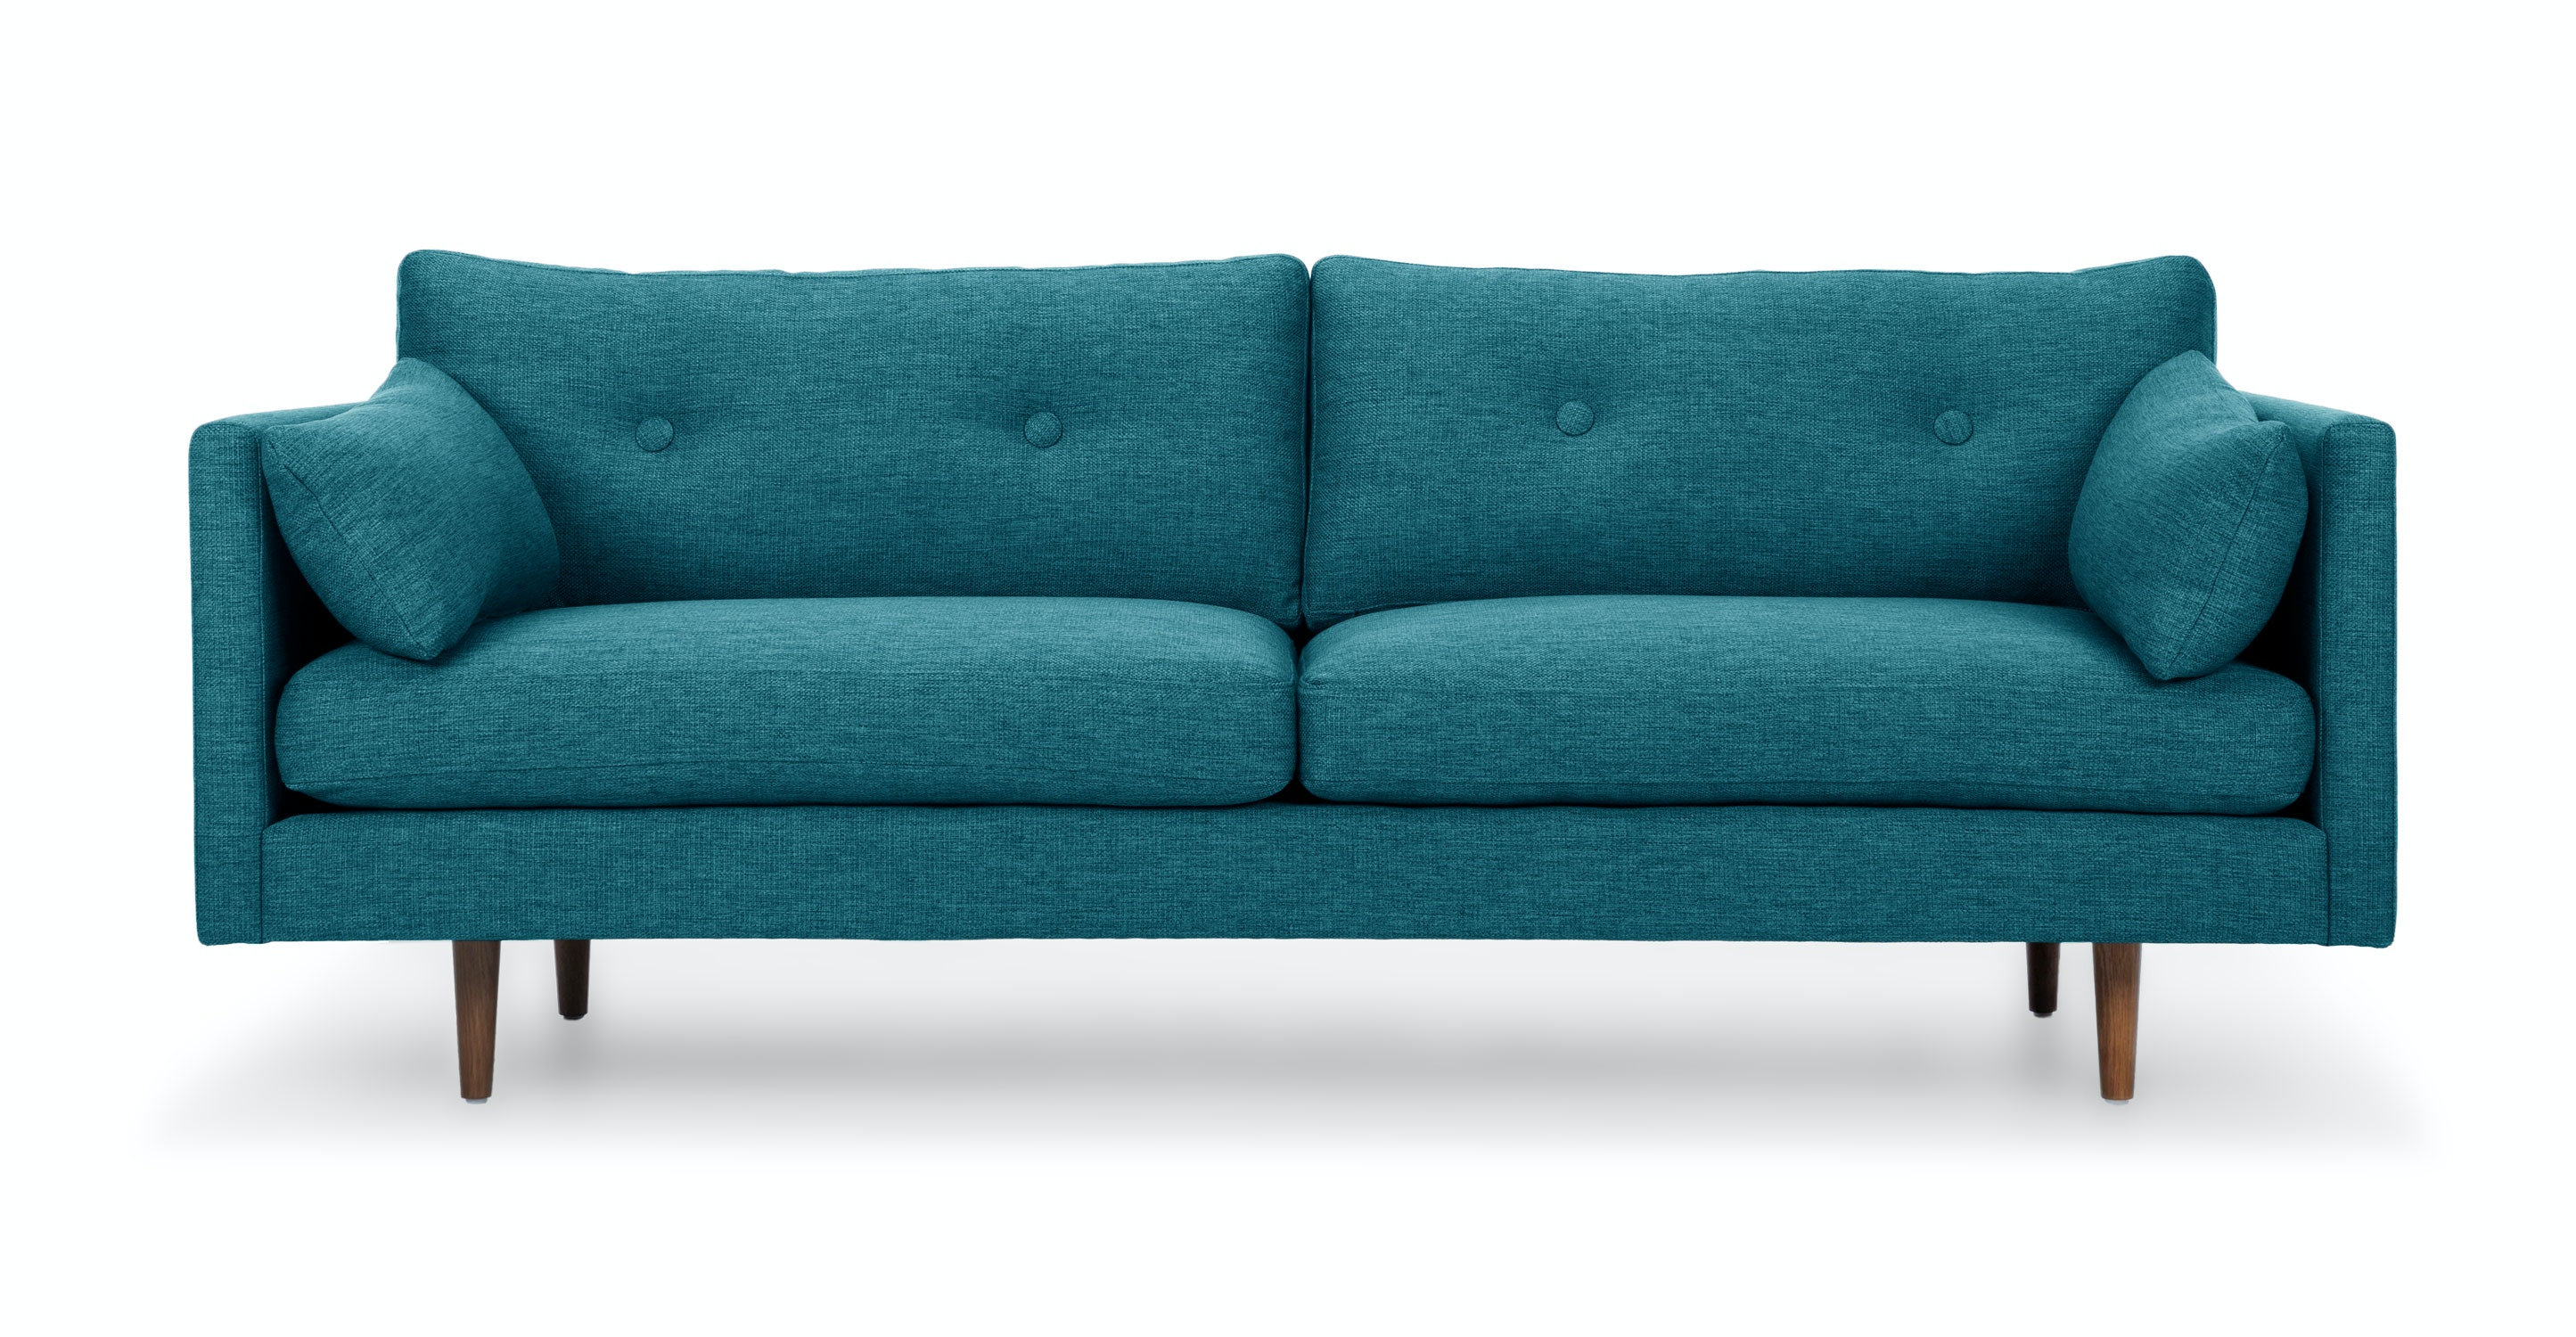 Anton arizona turquoise sofa sofas article modern for Furniture sofas and couches